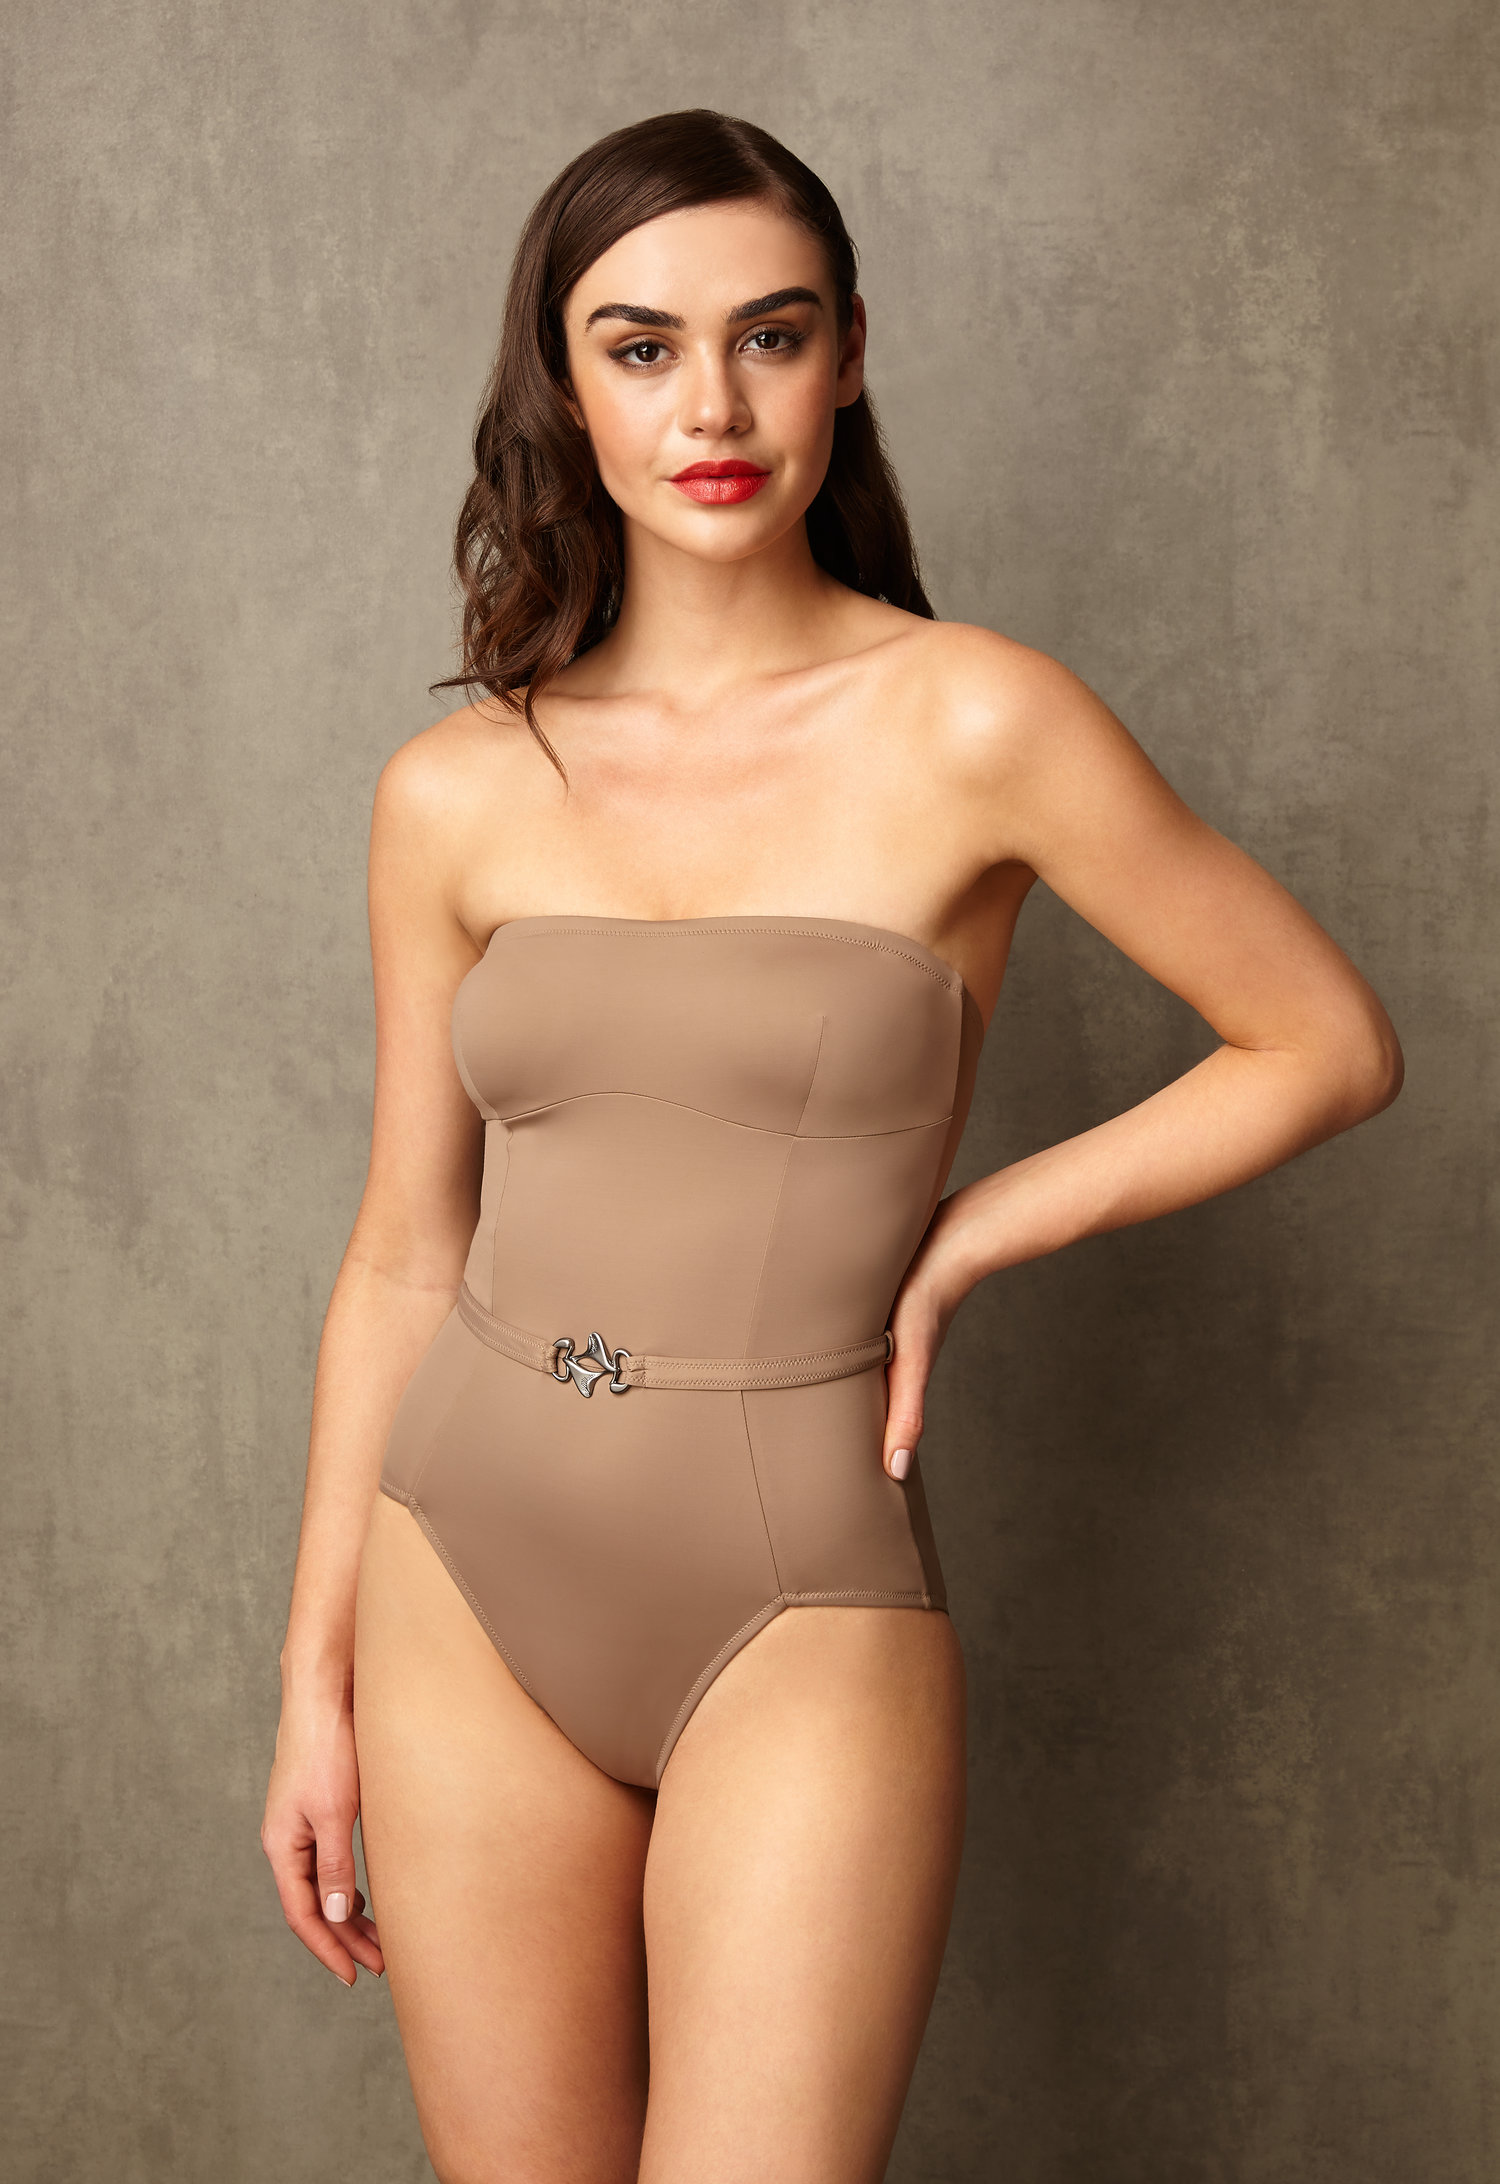 FOXTROT DESERT SWIMSUIT by Ava Verdú on curated-crowd.com